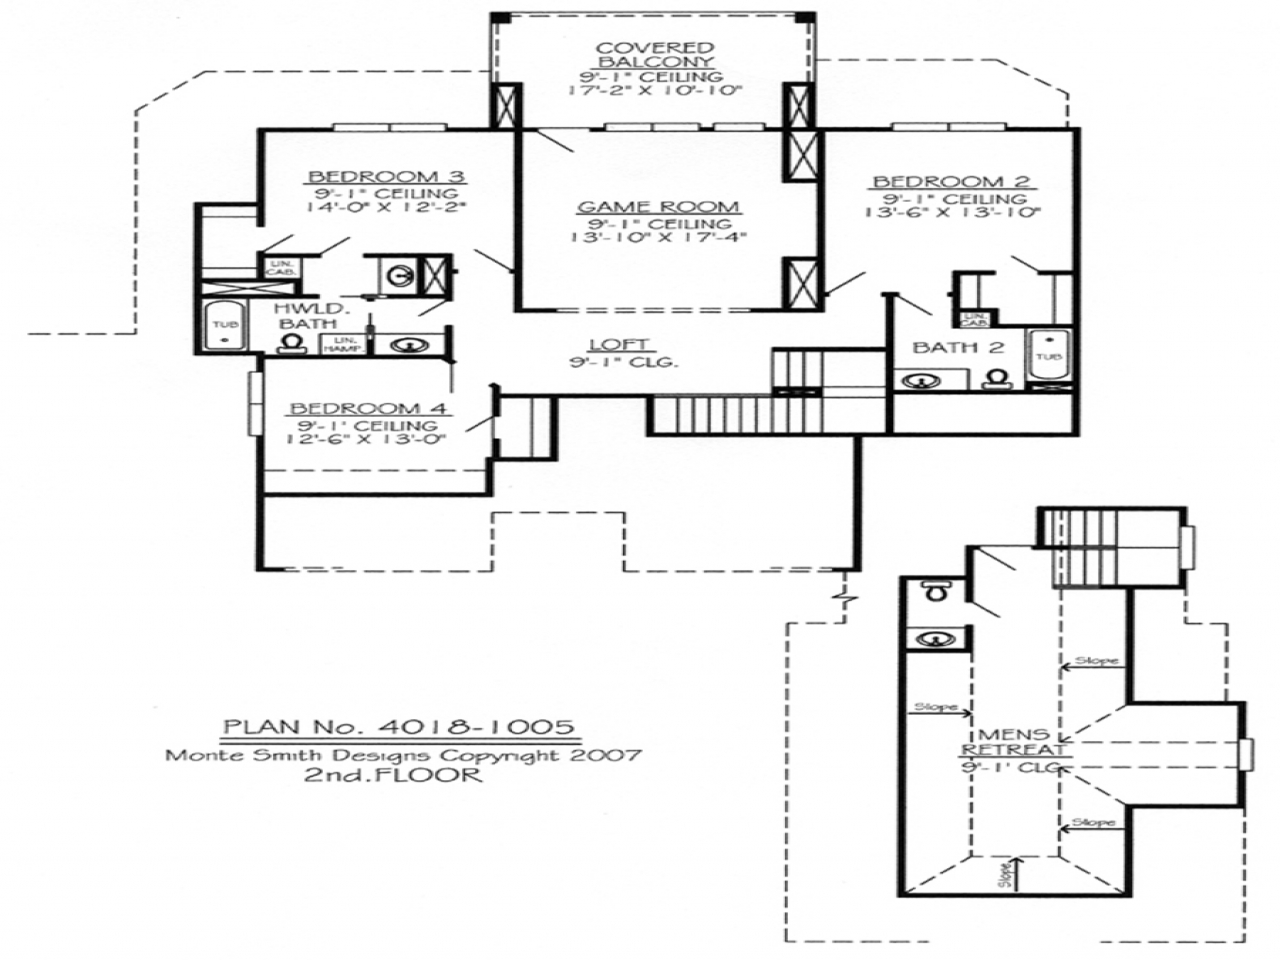 2 bedroom ranch house plans 2 bedroom house plans with for 2 bedroom house plans with loft